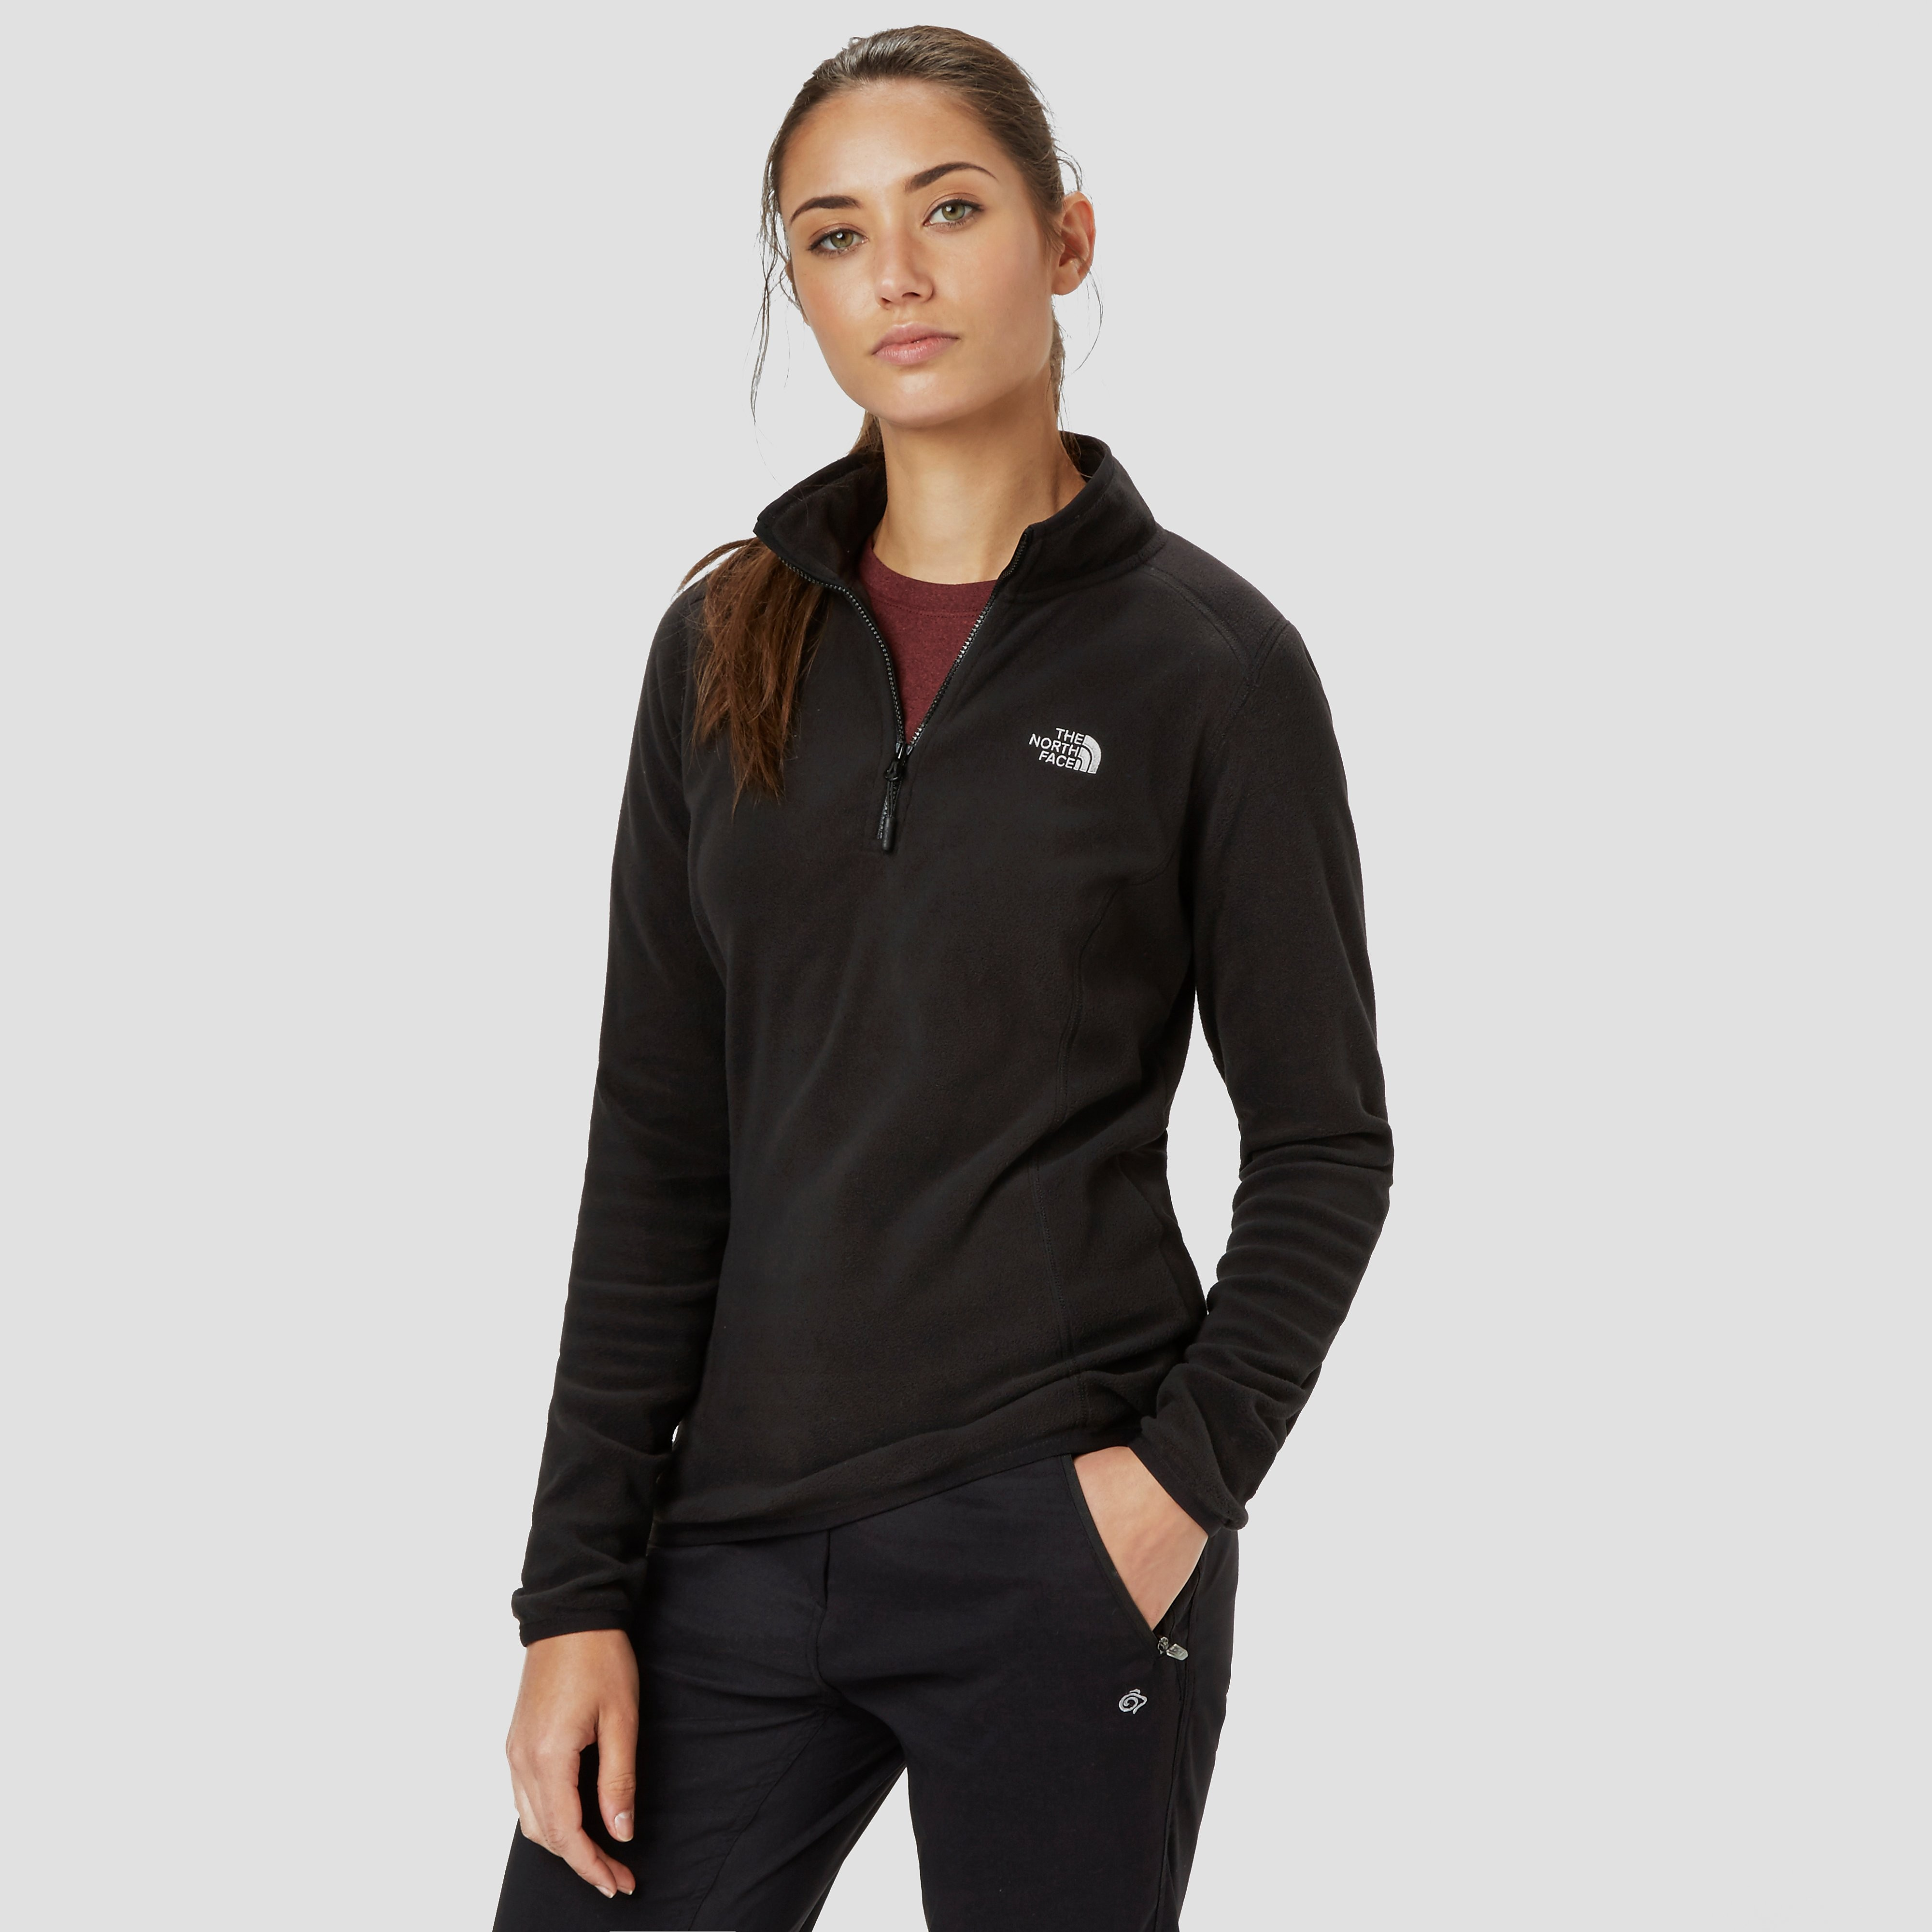 The North Face 100 Glacier 1/4 Zip Women's Fleece